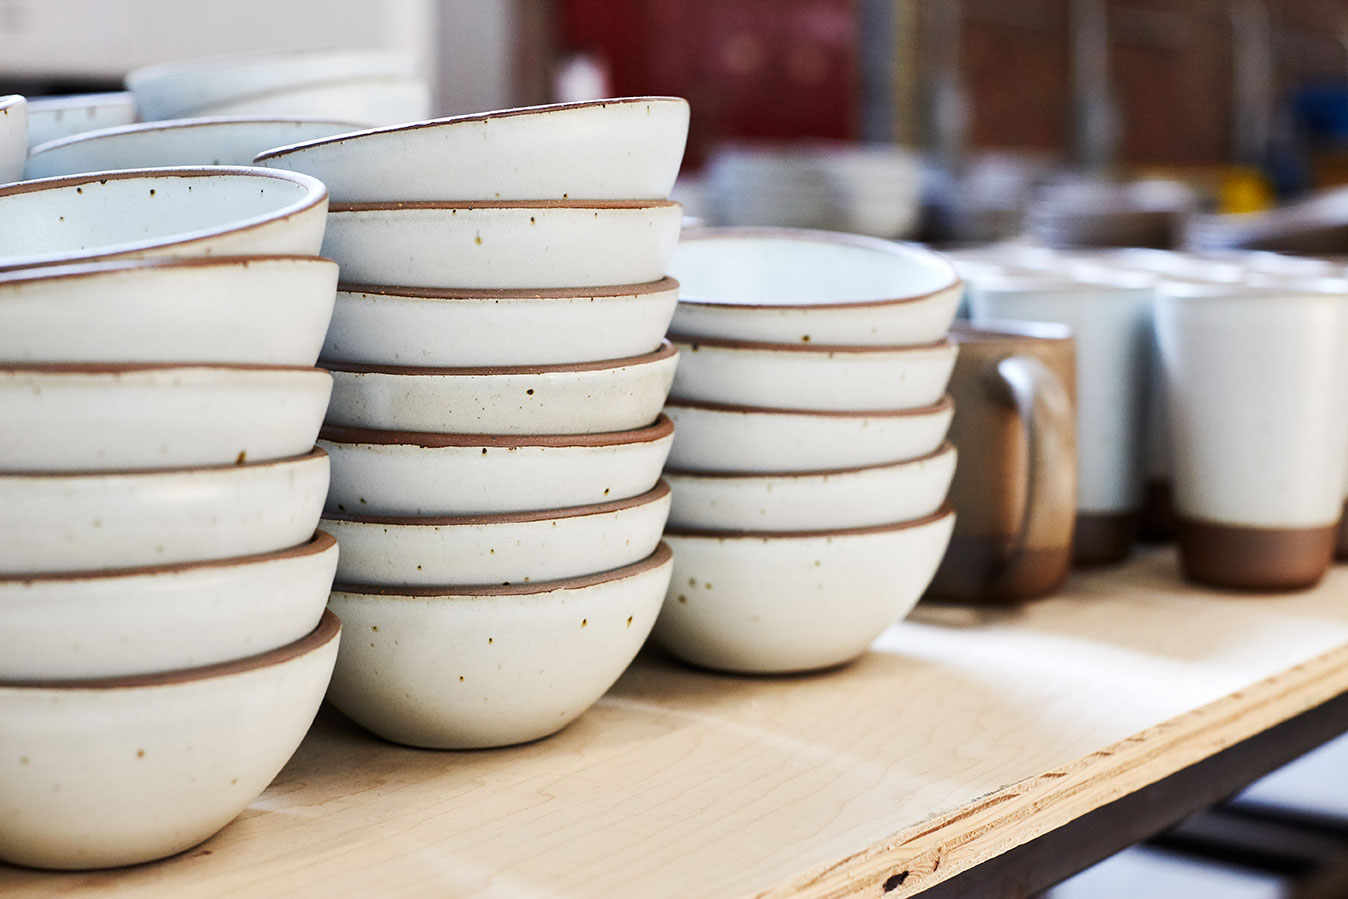 Row of Eggshell Cereal Bowls